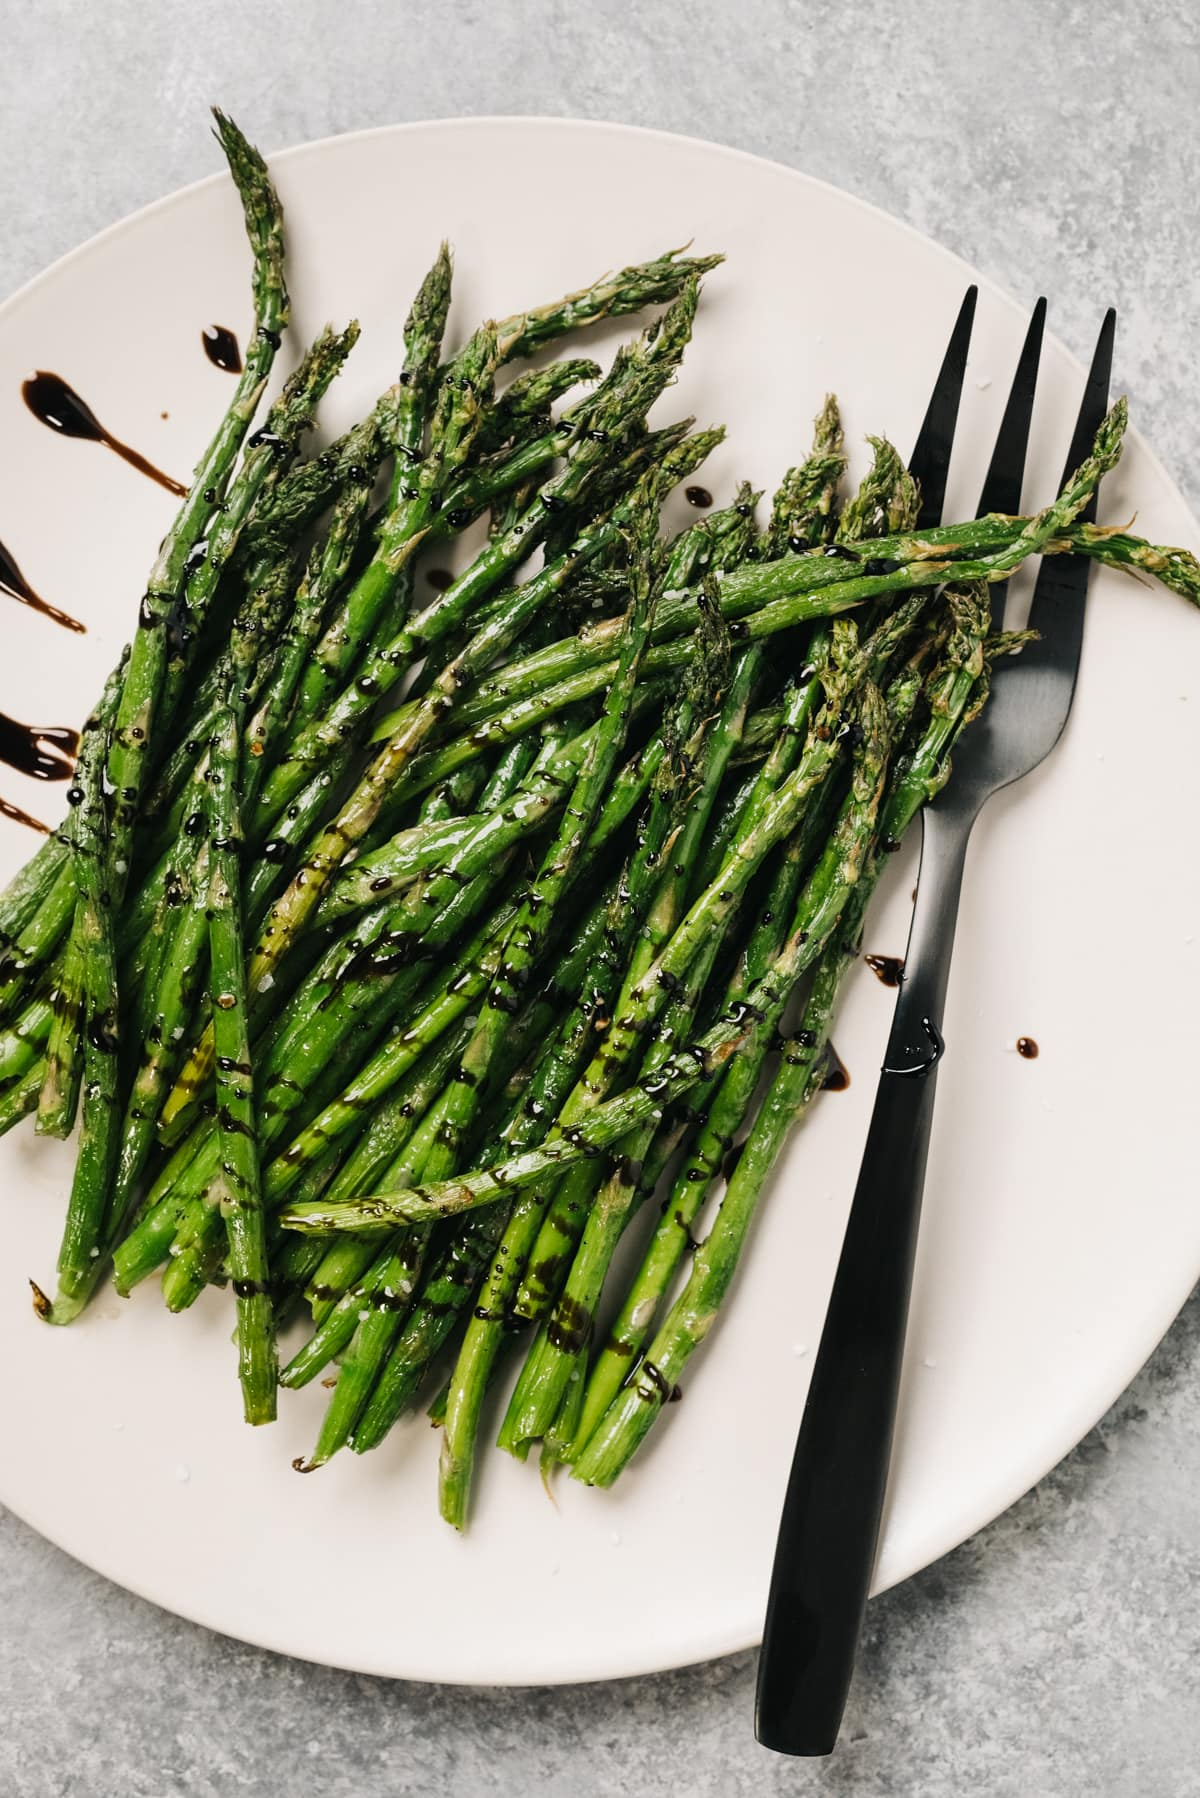 Asparagus cooked in an air fryer on a cream serving plate with a serving fork, drizzled with balsamic reduction.